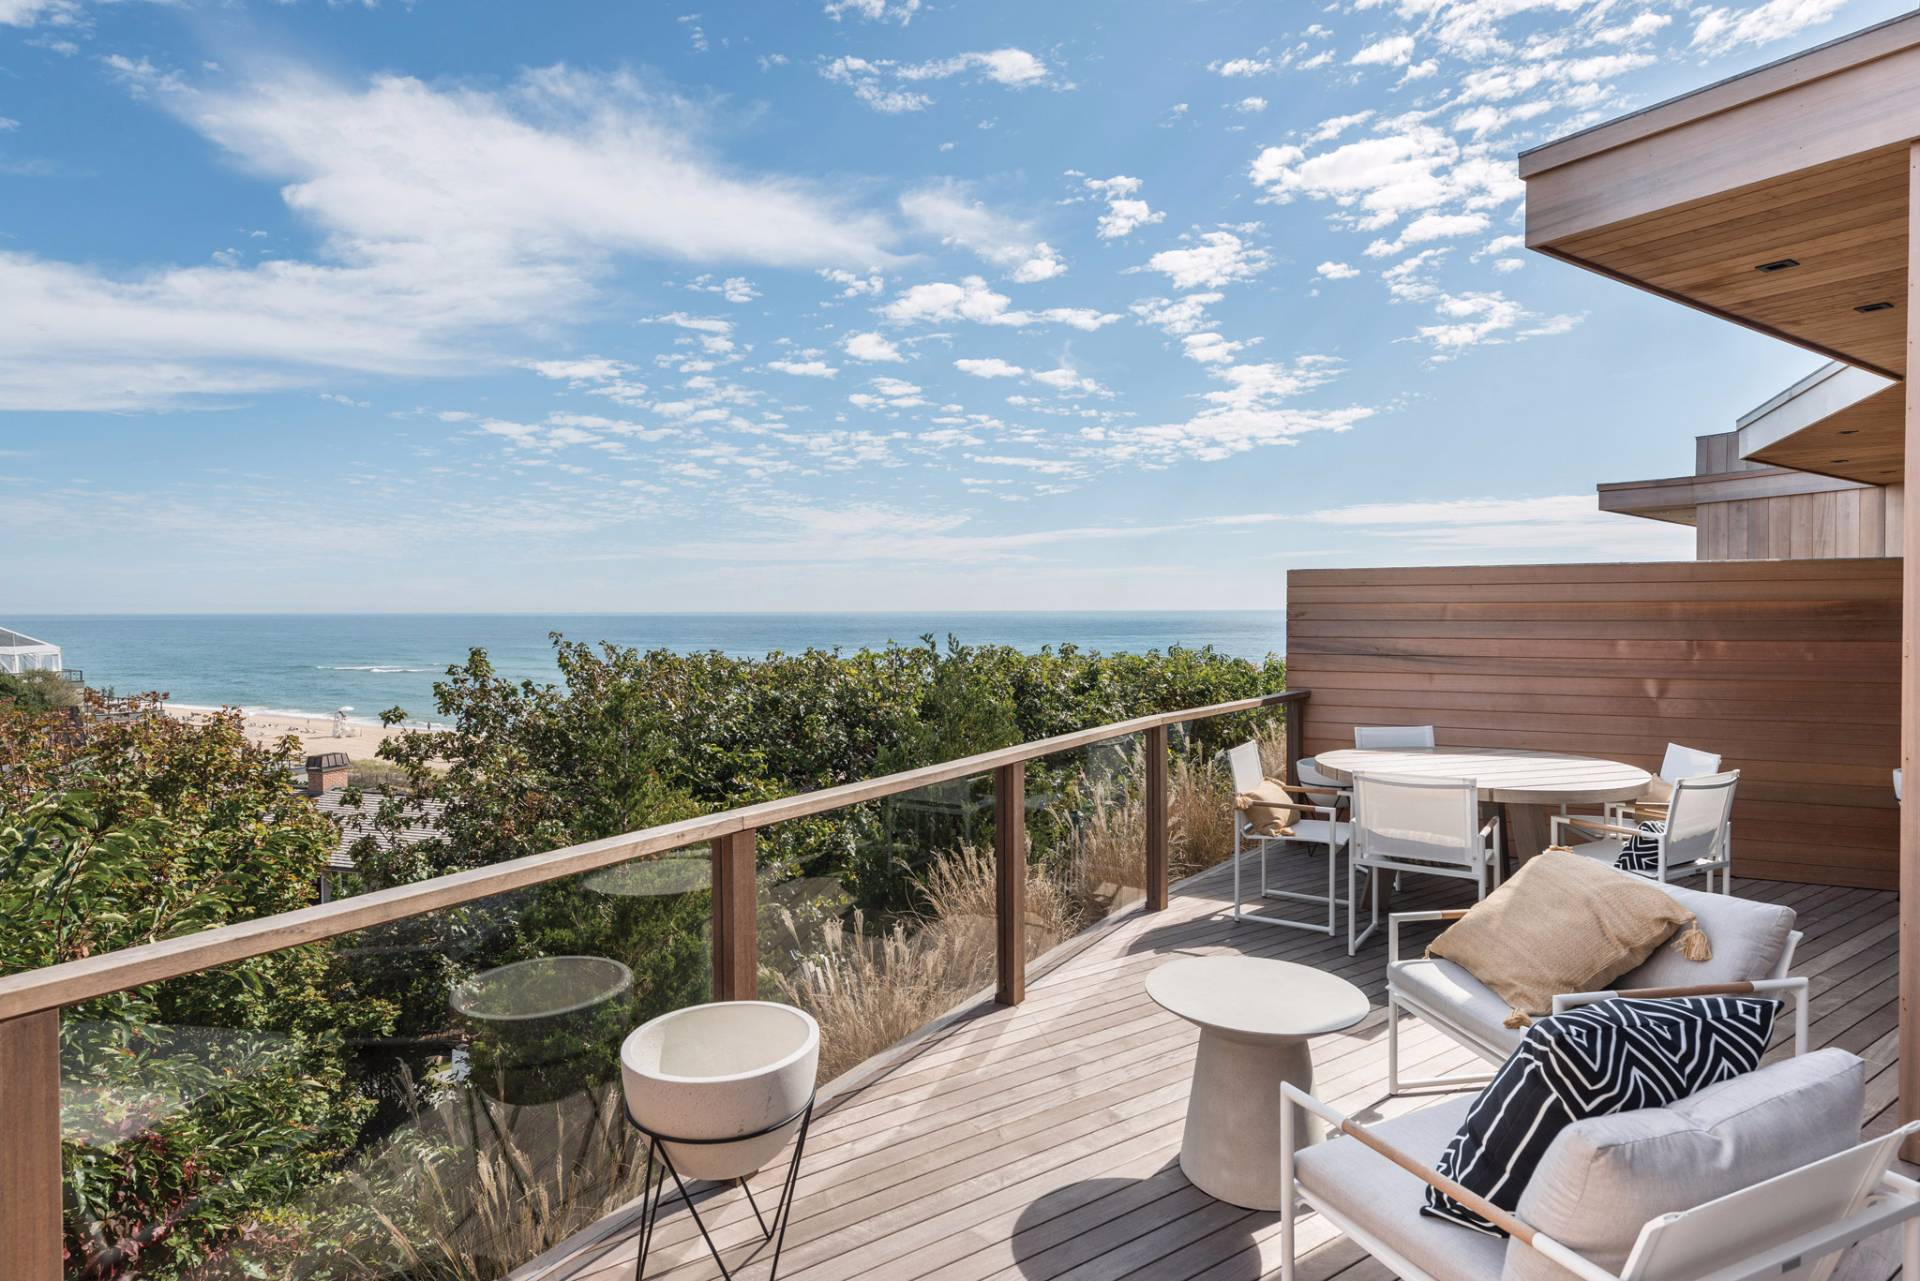 Single Family Home for Sale at Point Of View Oceanfront Unit B 272 Old Montauk Highway, Point Of View B, Montauk, New York